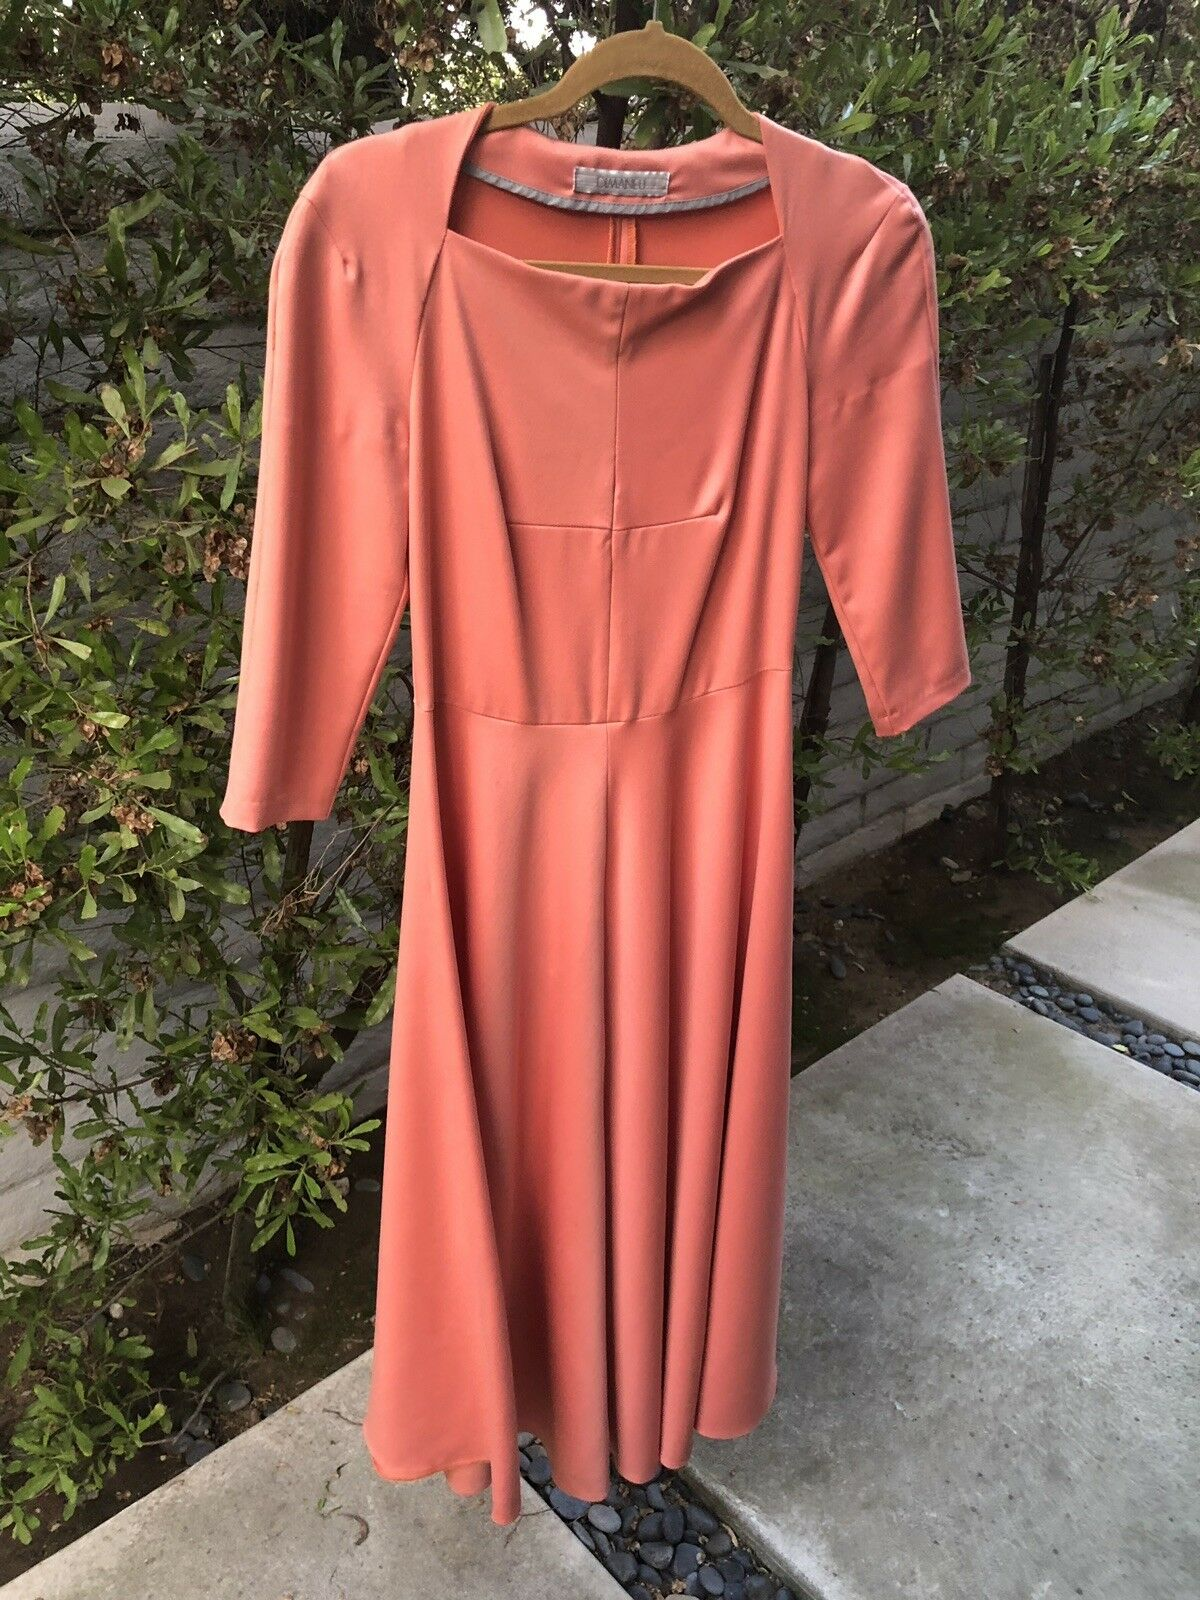 DIMANEU orange Dress Viscose Blend Size S ()